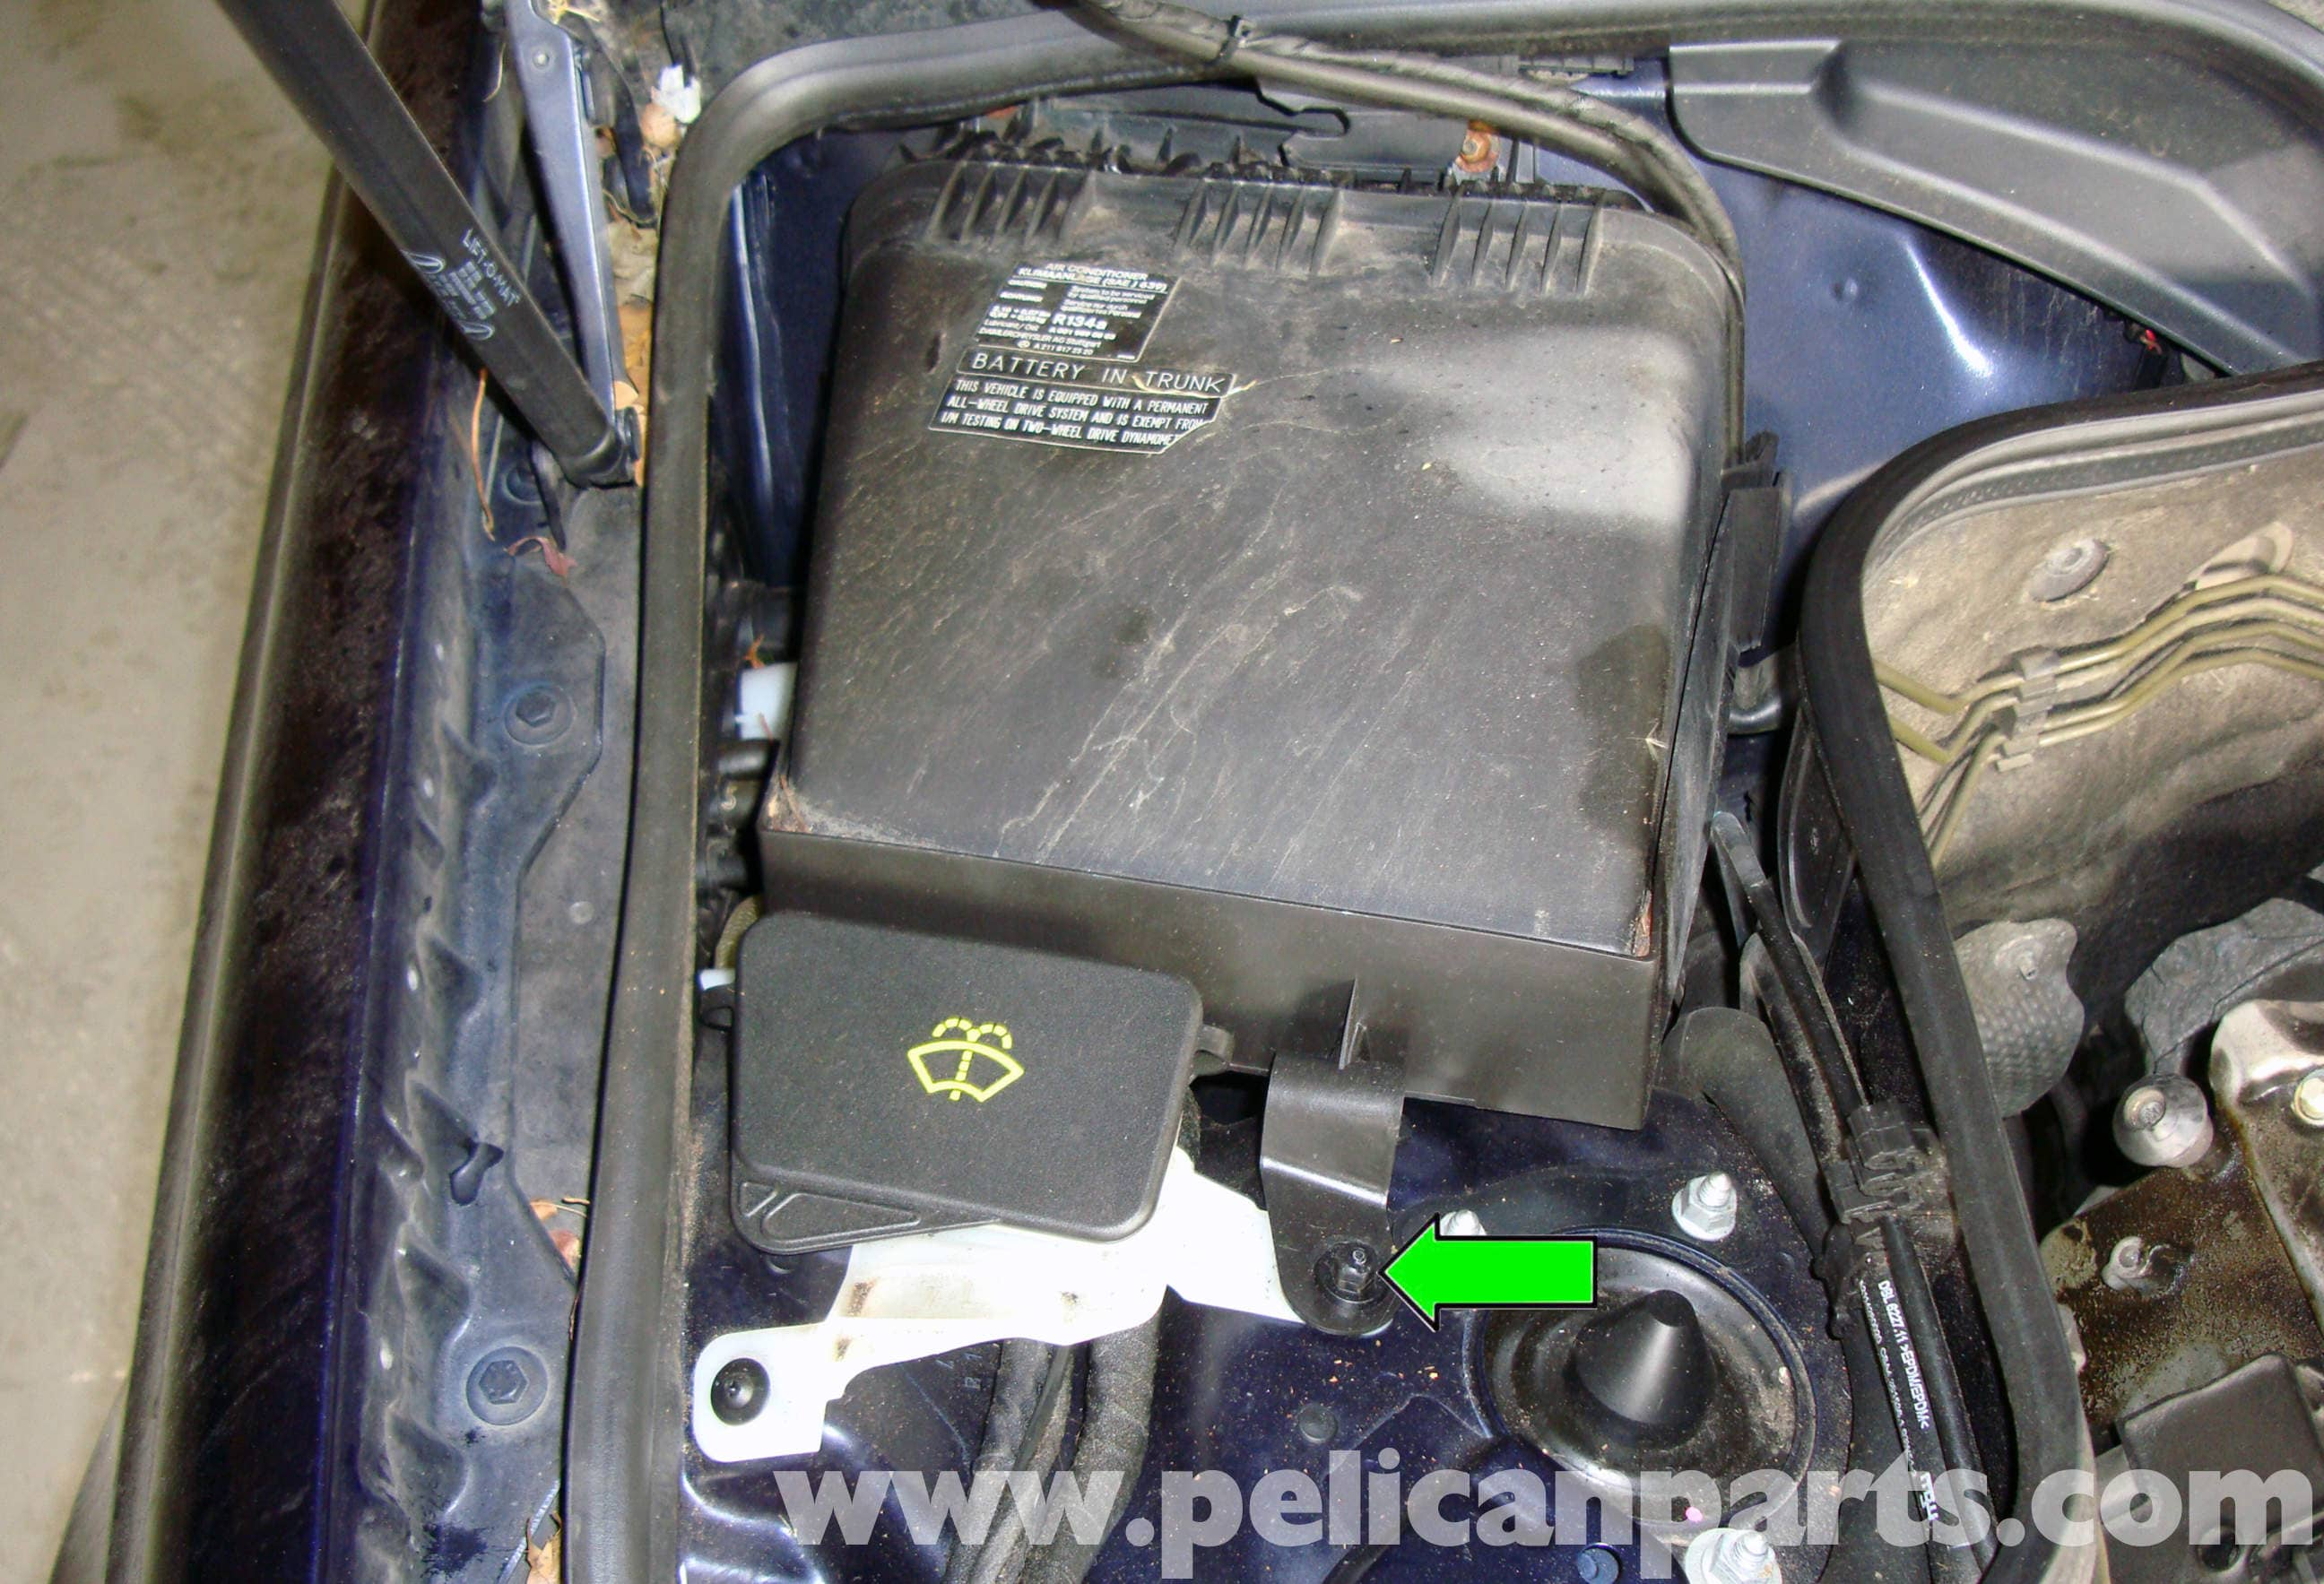 Mercedes benz w211 auxiliary battery replacement 2003 for Mercedes benz e320 battery